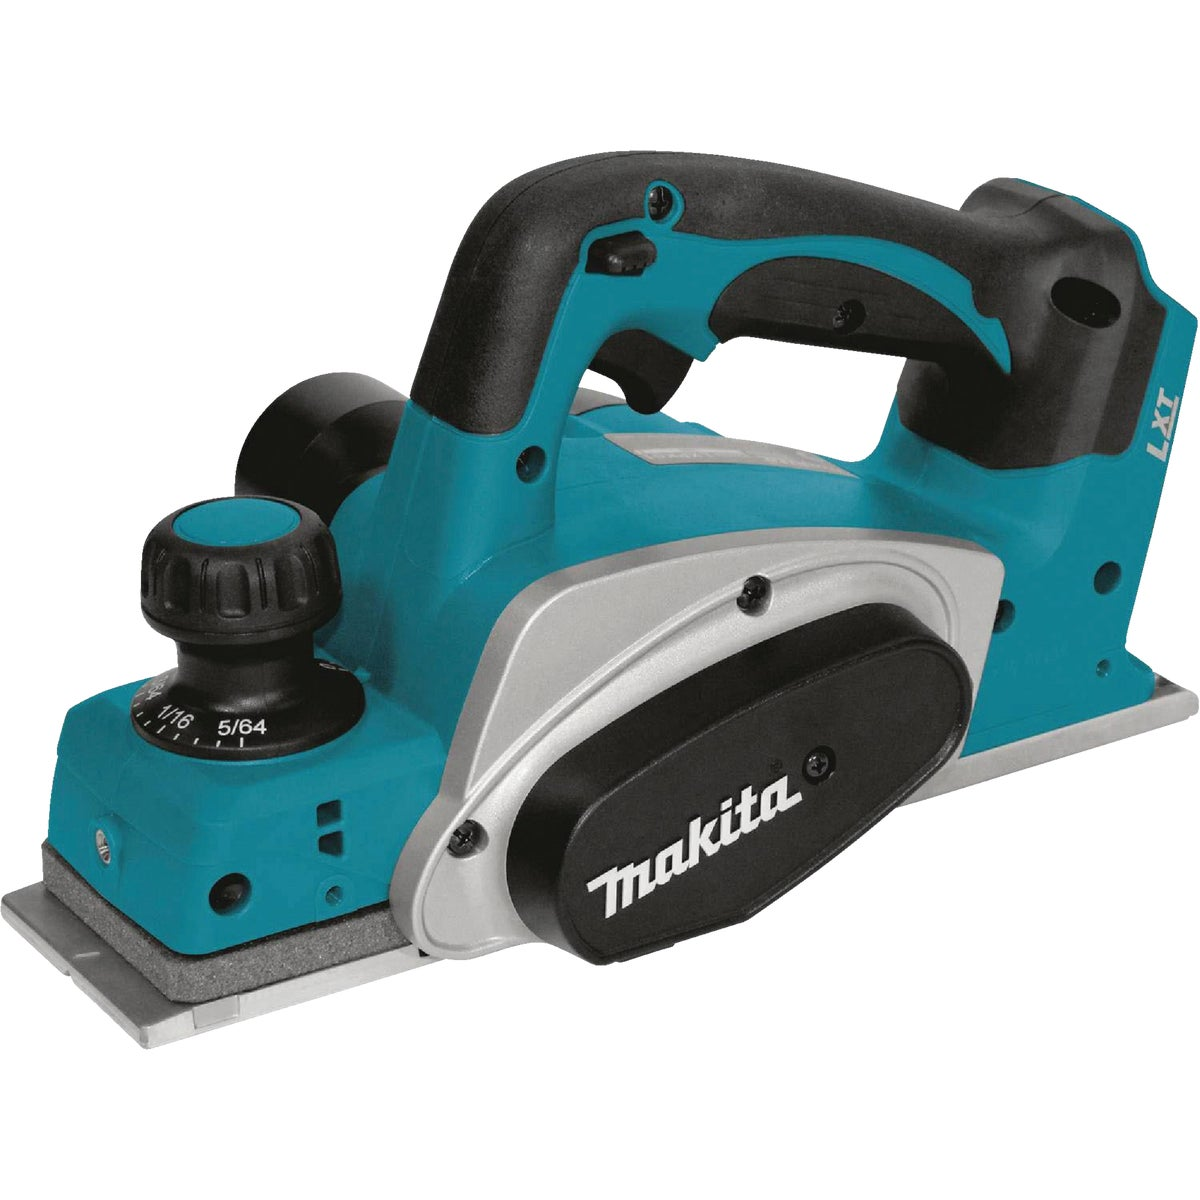 "18V 3-1/4"" CRDLS PLANER - LXPK01Z by Makita Usa Inc"